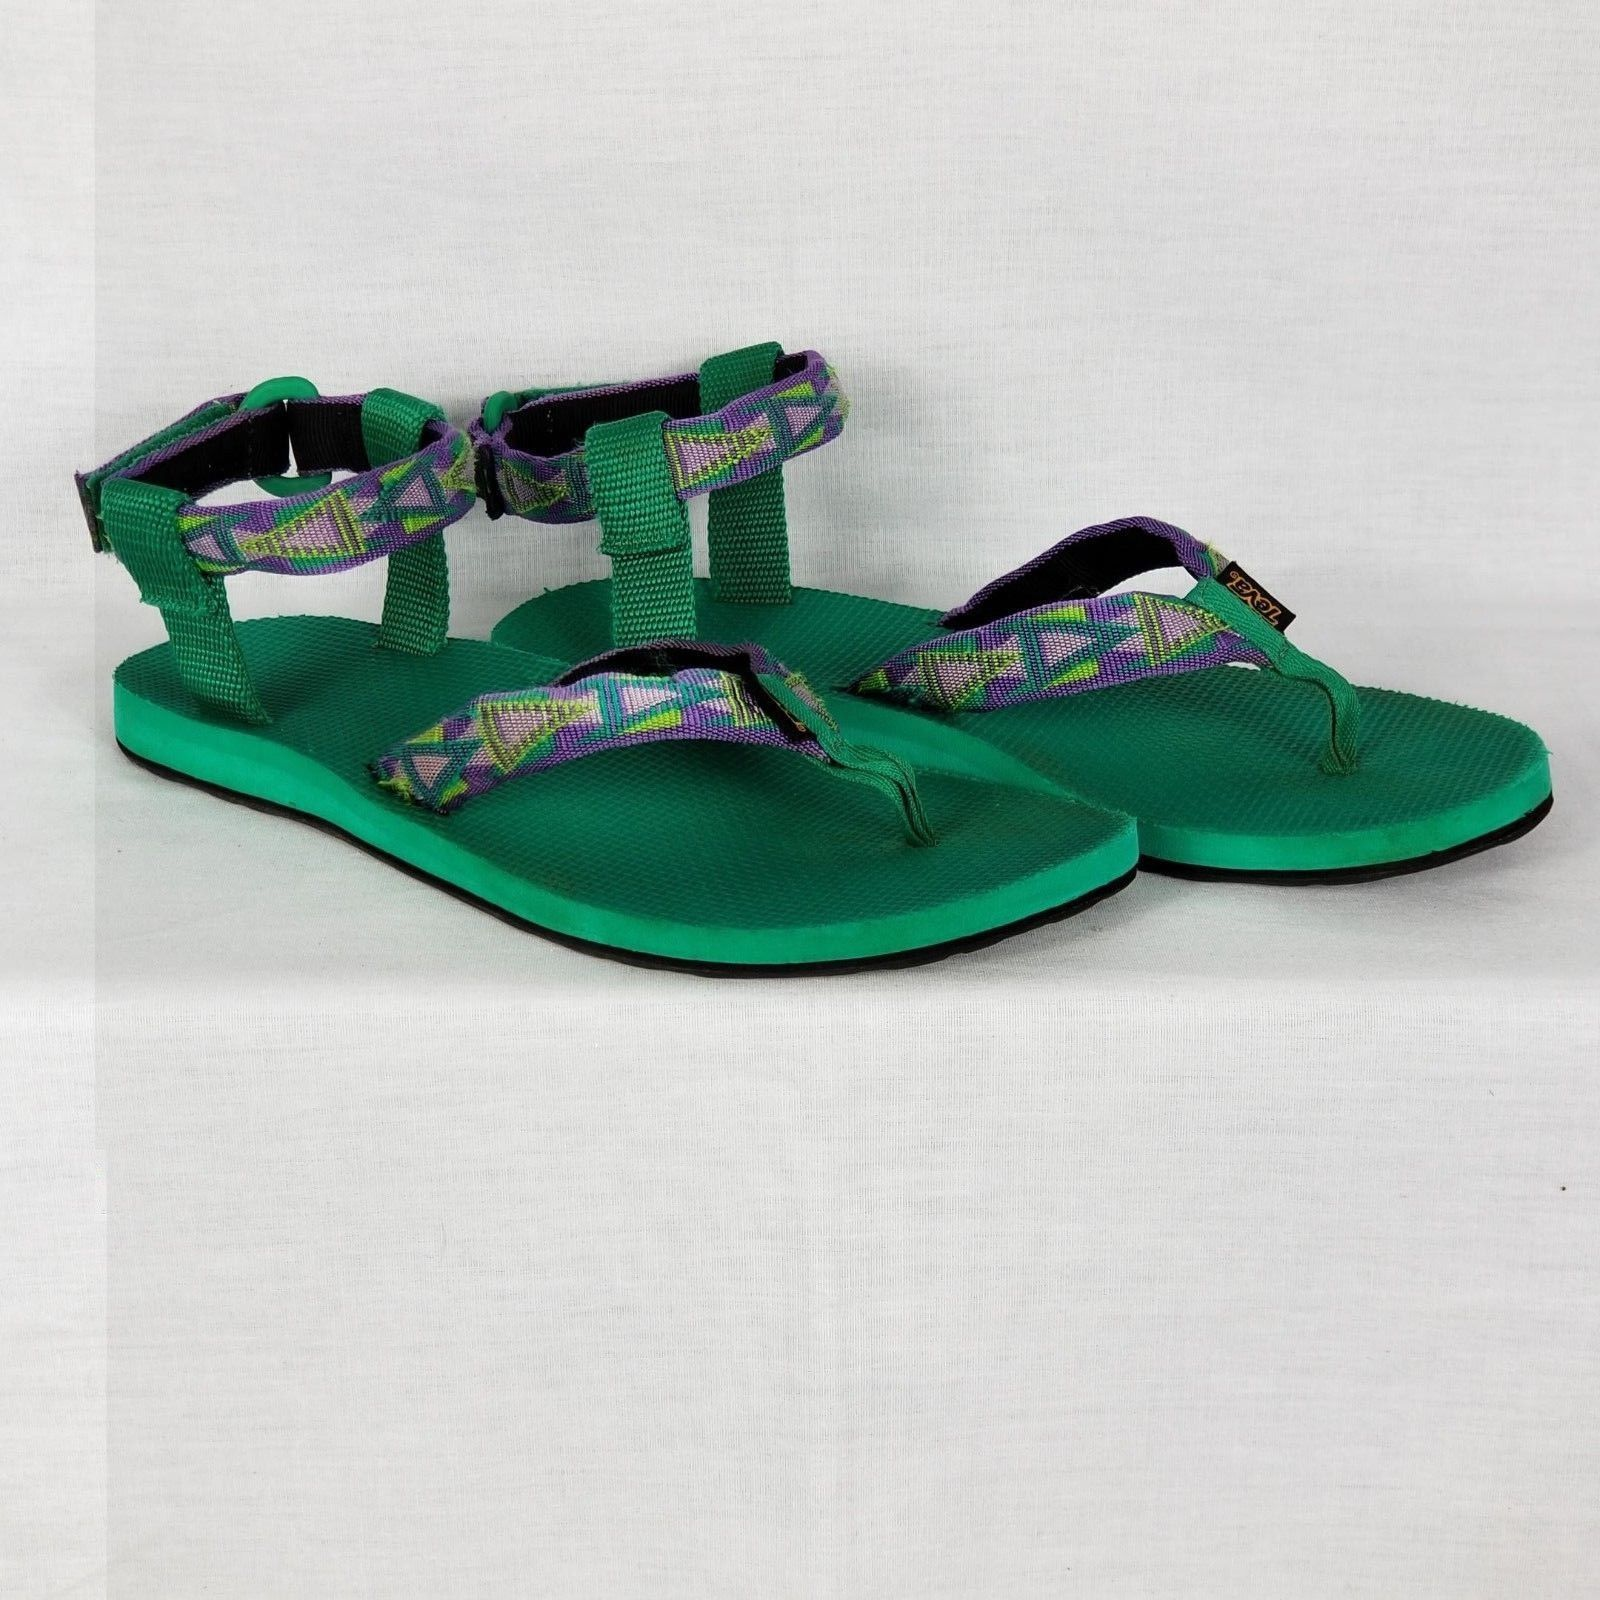 167bced7ea Womens TEVA 1003986 Green Thong Ankle Cuff Sport Sandals Shoes SIZE 10 EU 41